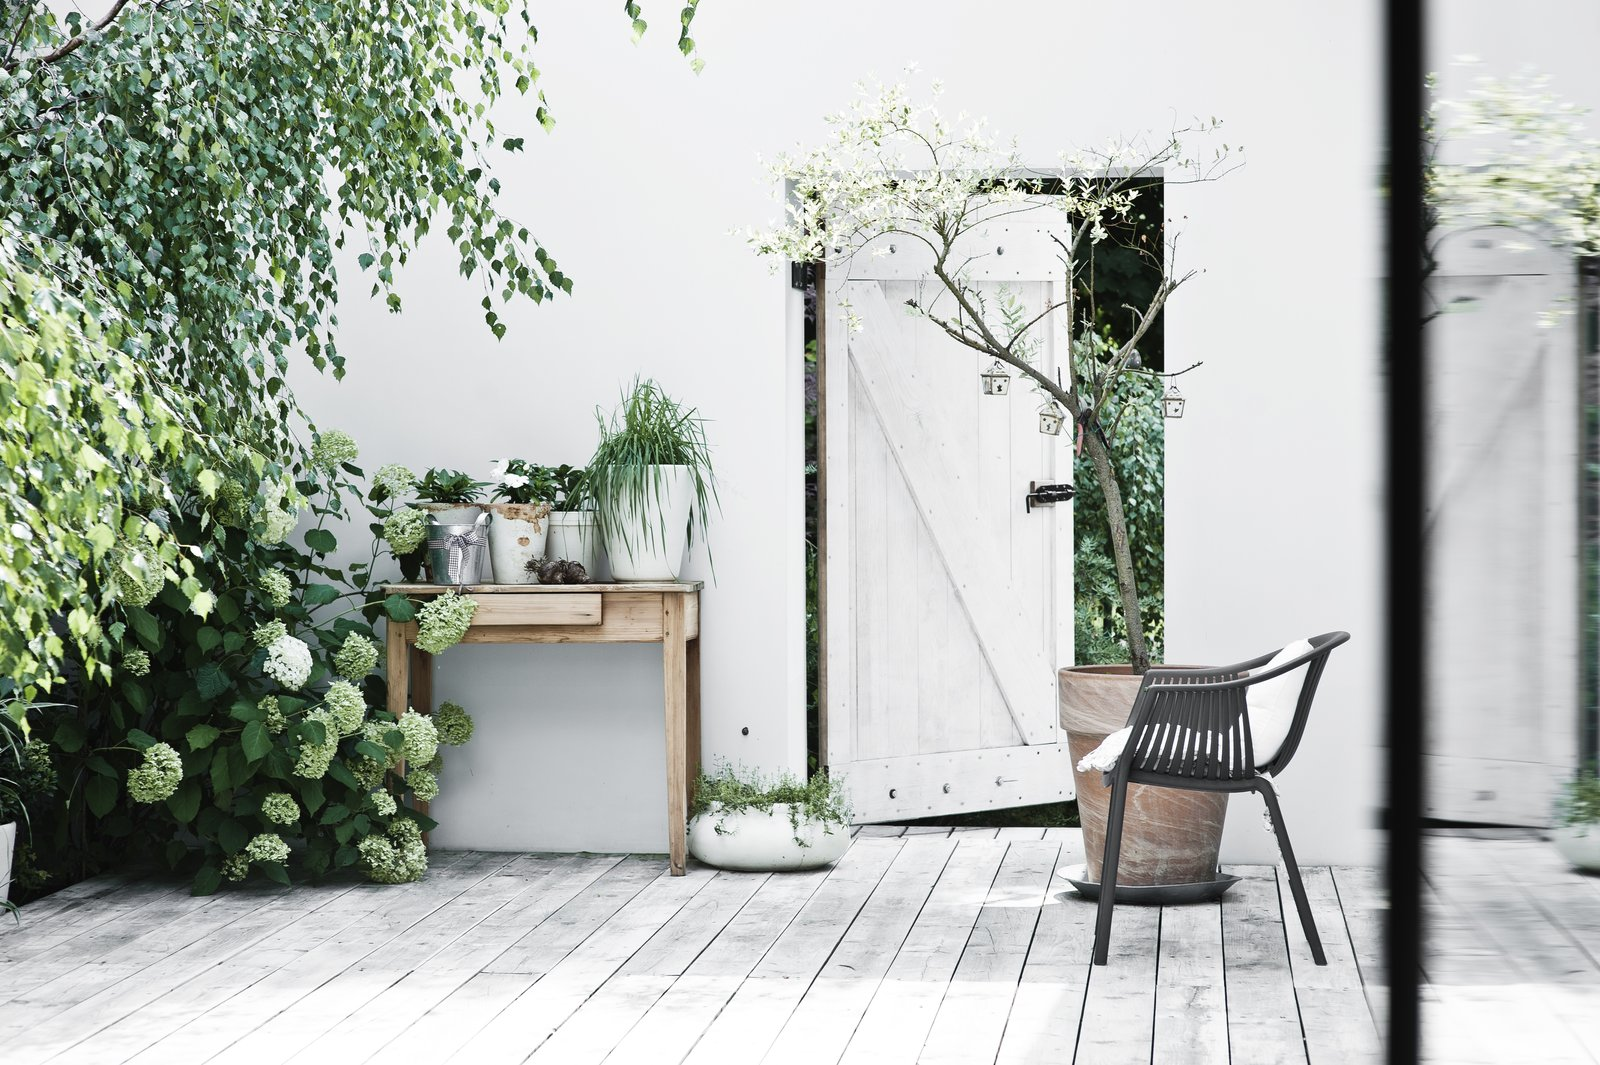 """A door leads out from the romantic courtyard, lush with plants. """"Although we live in a big city, it doesn't feel like it,"""" Kolasiński says. """"The neighborhood and the nature are very relaxing and quiet."""""""